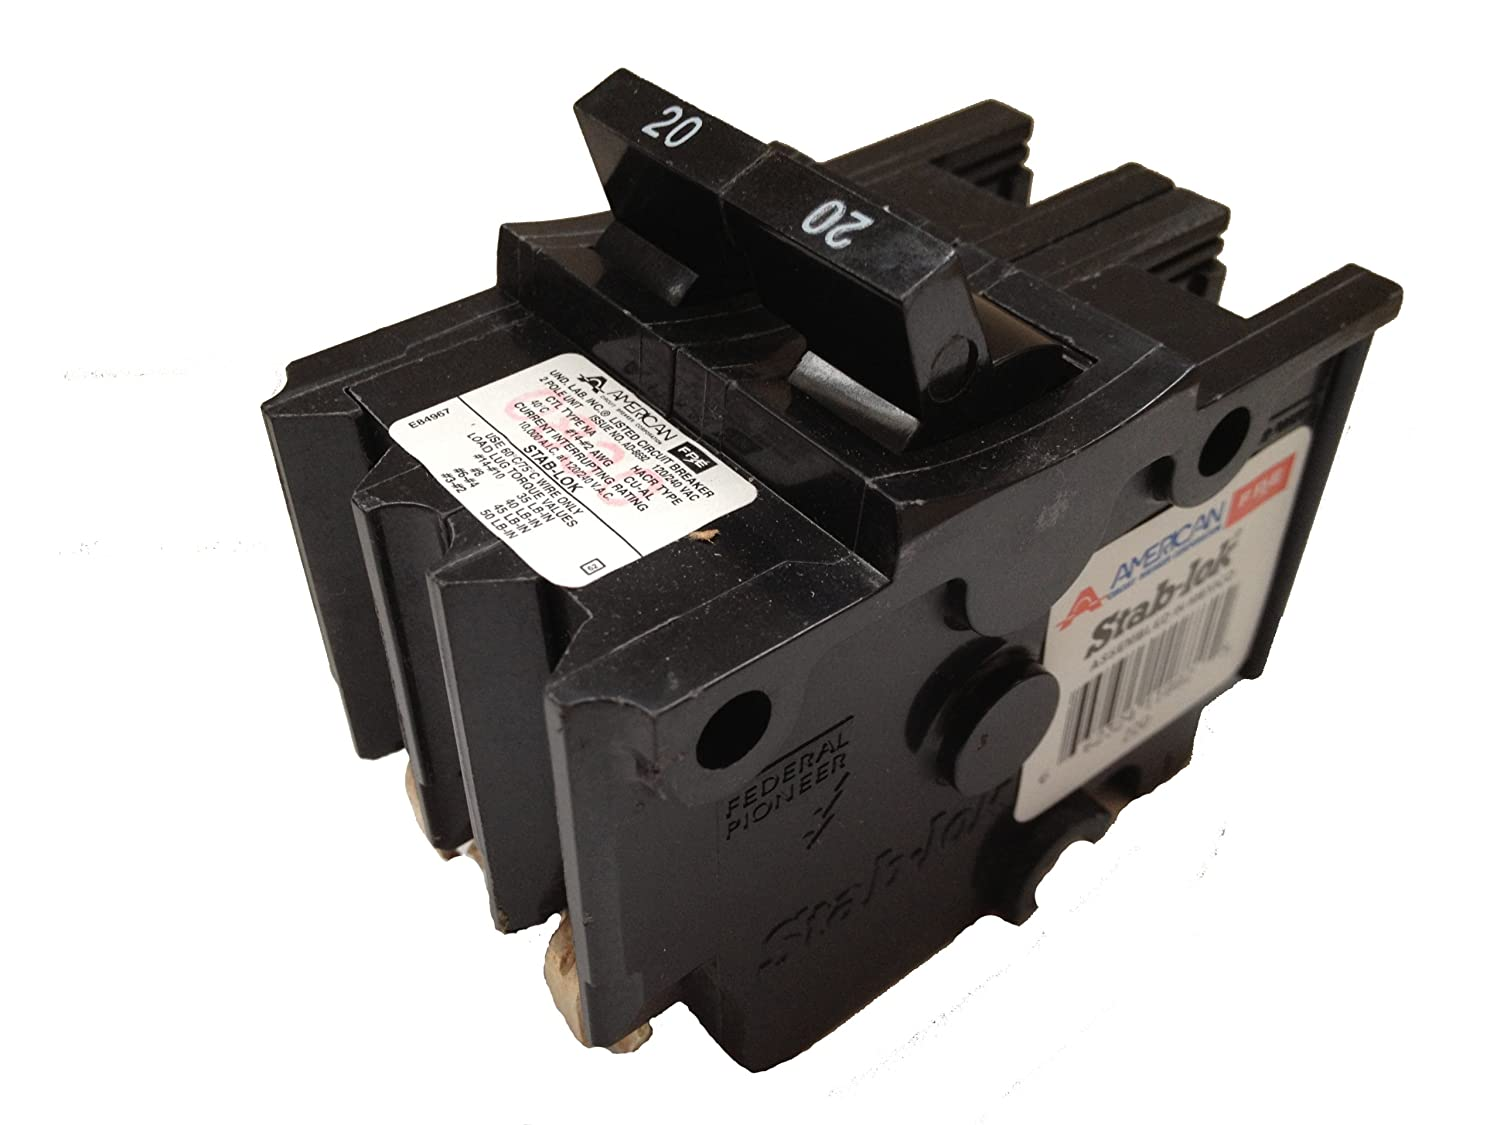 1- Federal Pacific Stab-Lok NA220 20 AMP 2-POLE Challenger / FPE THICK STYLE Circuit Breaker